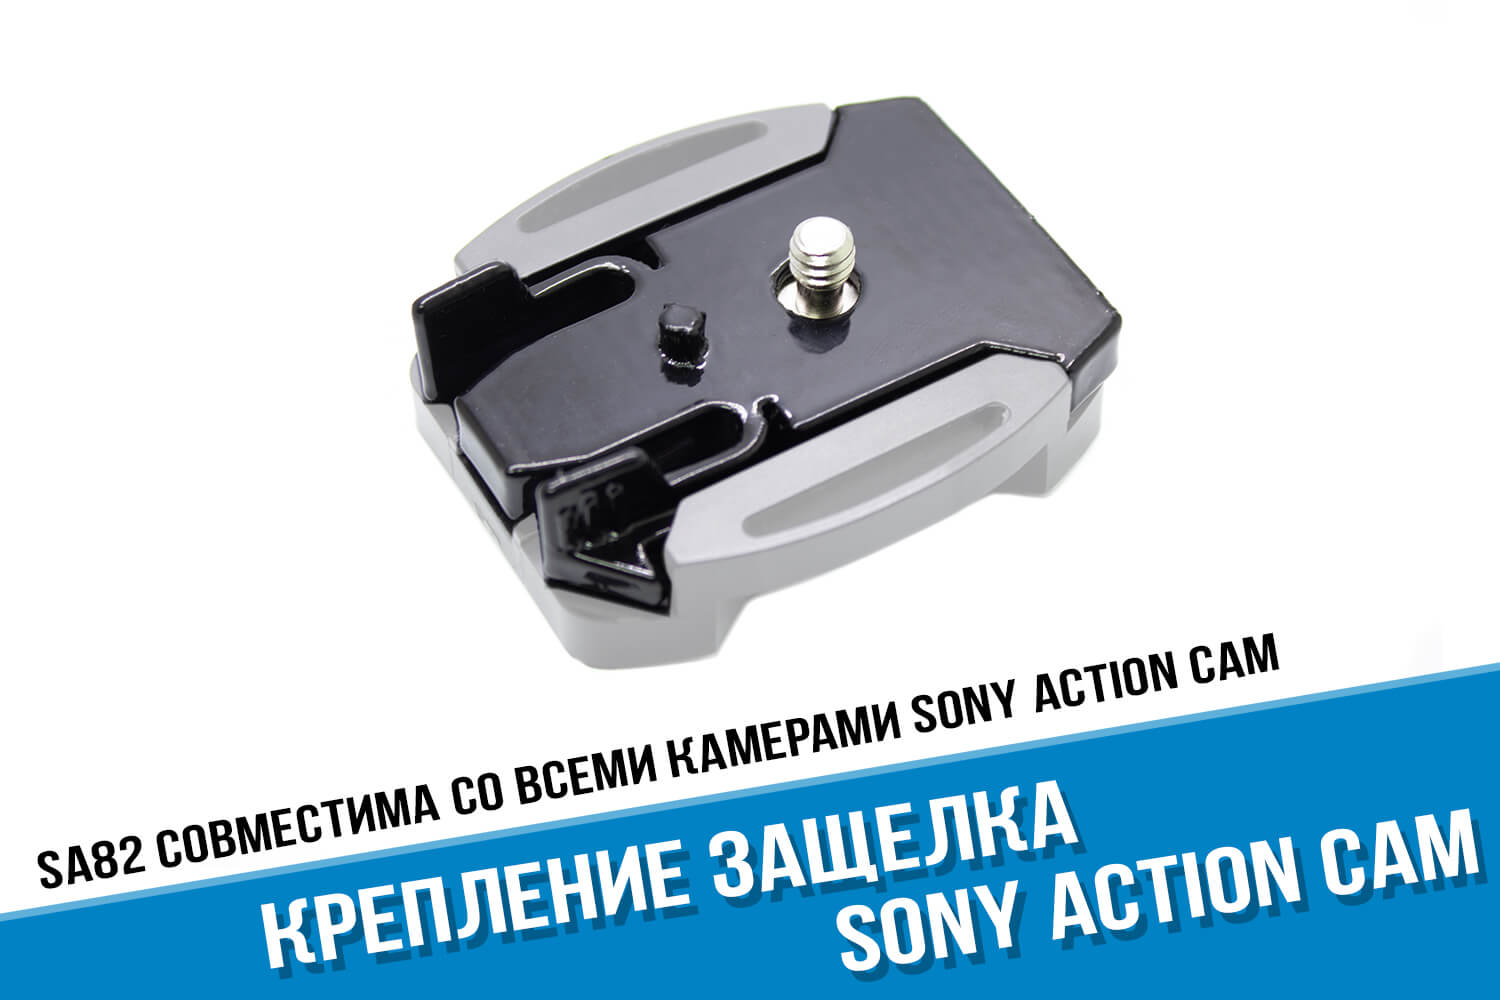 Черная защелка Sony Action Cam в платформе